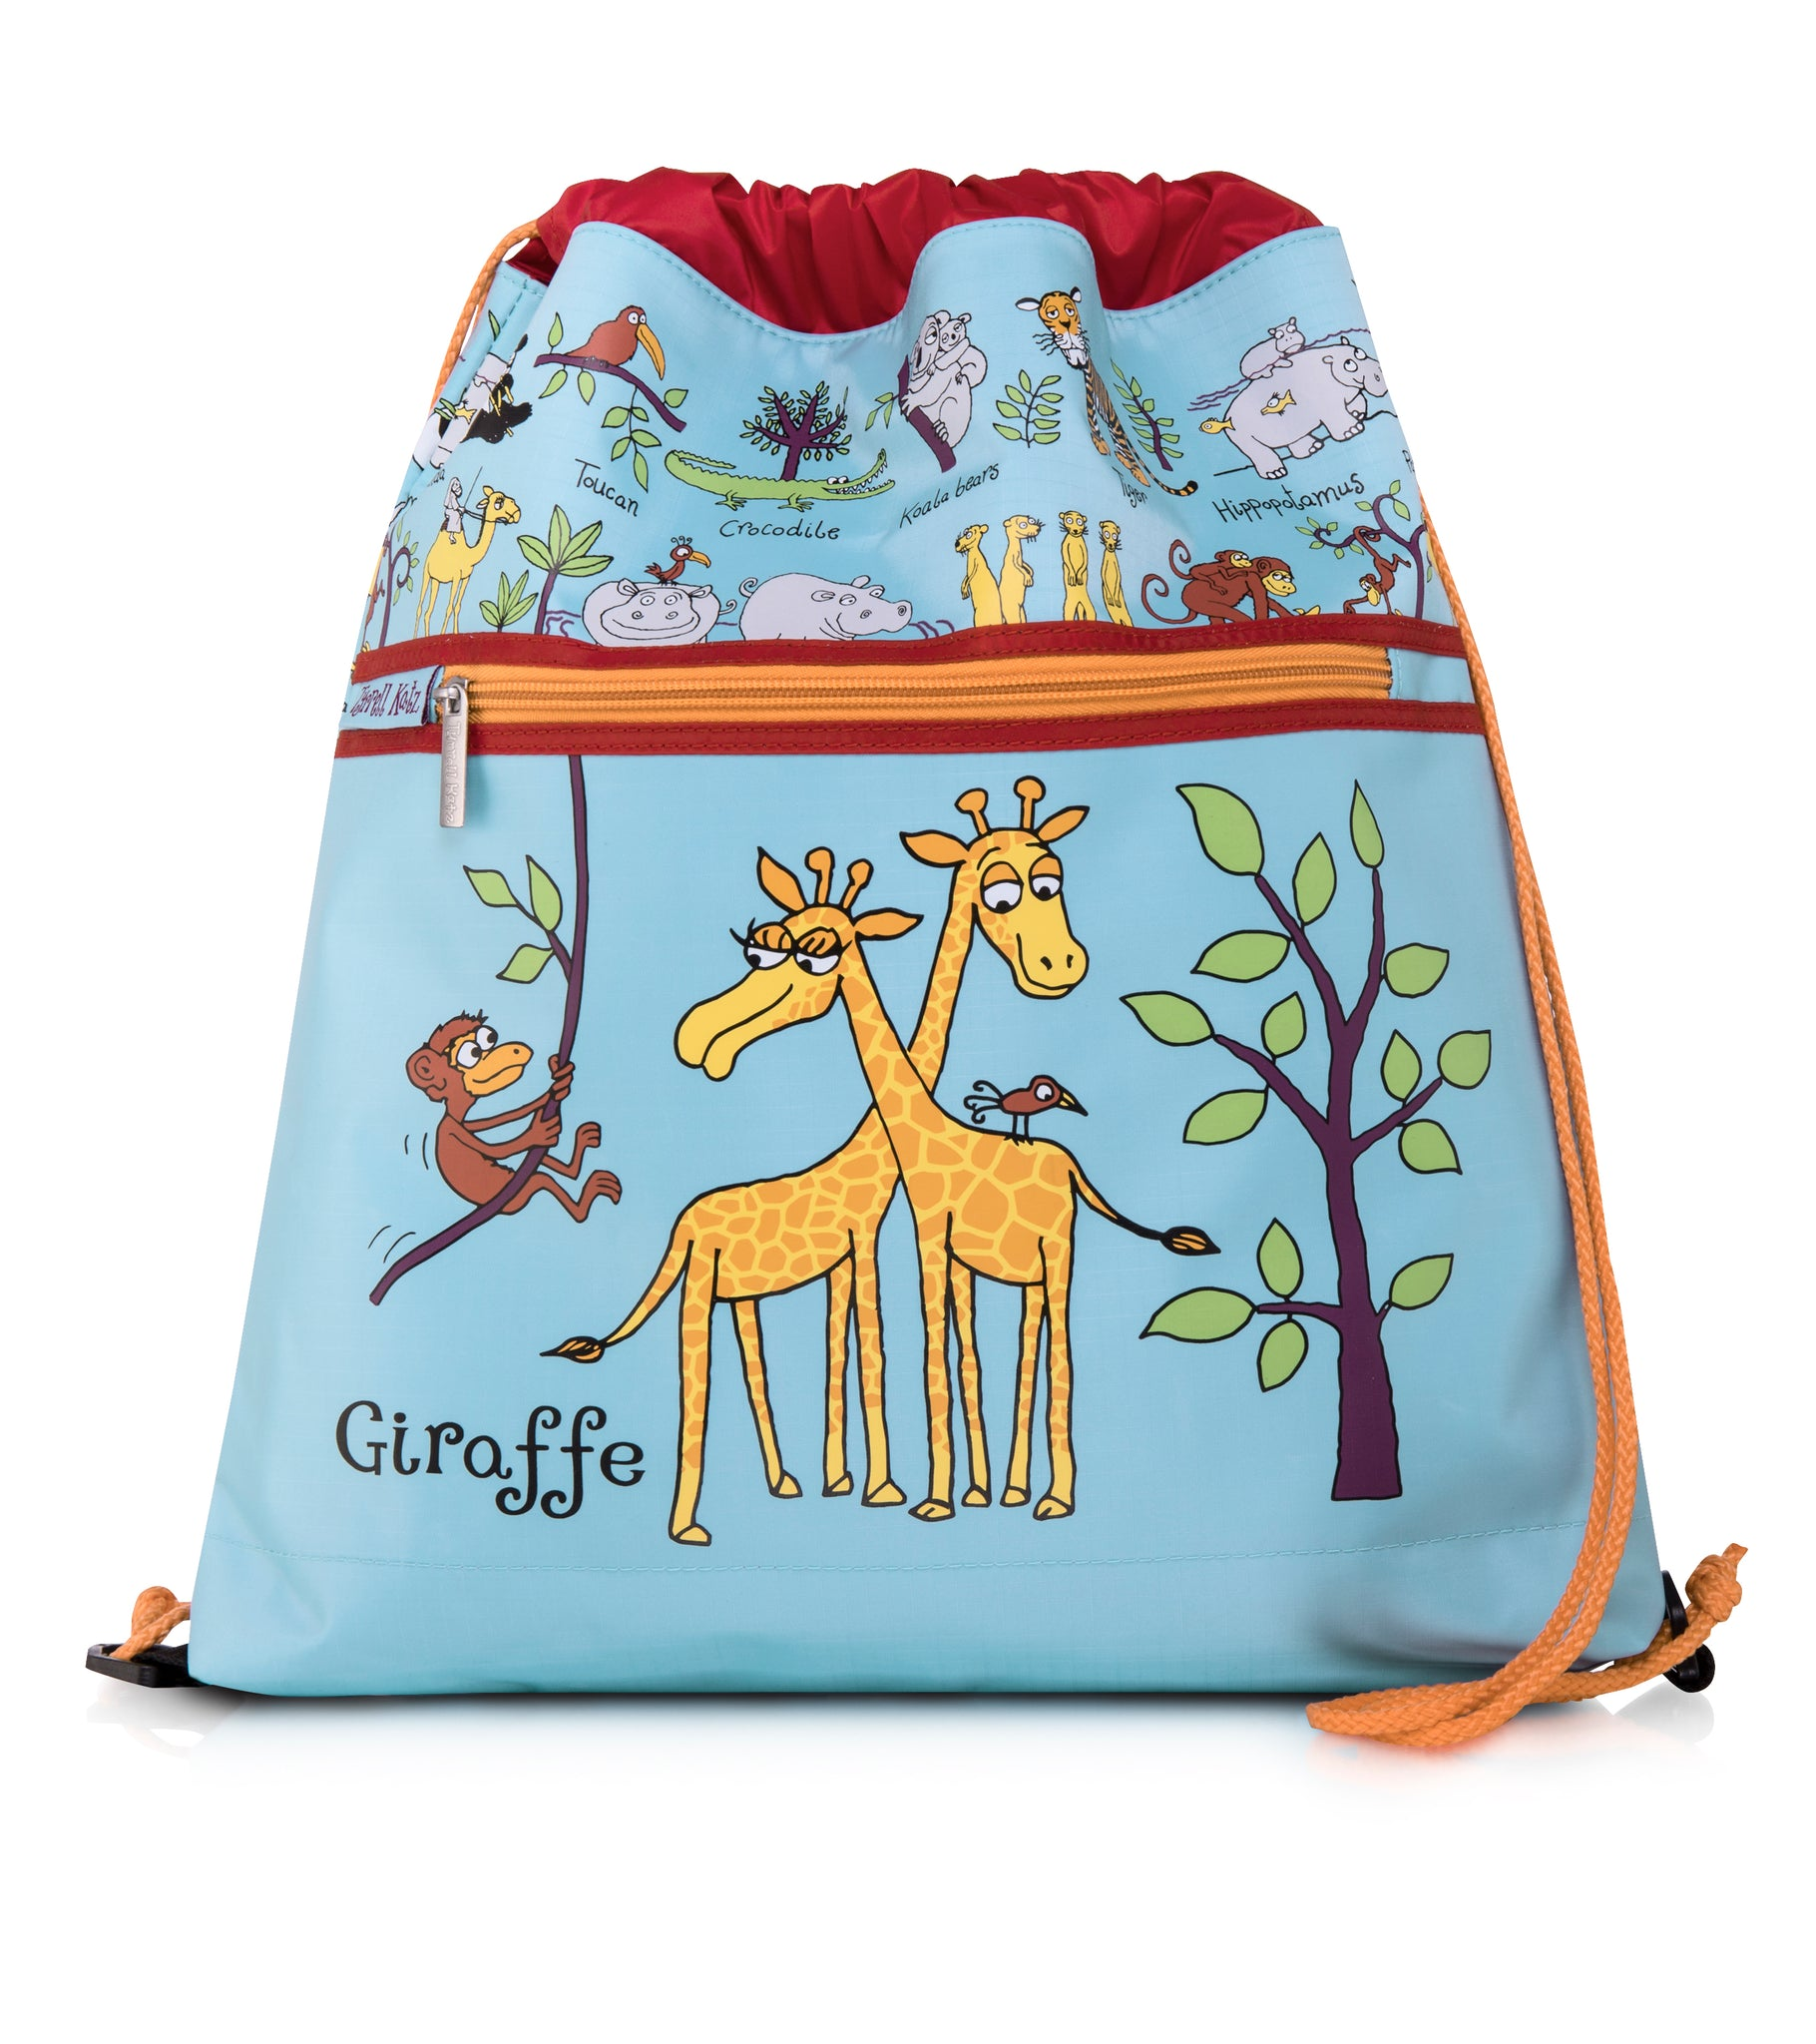 cadeauxwells - Jungle New Kitbag - Tyrrell Katz - Childrens